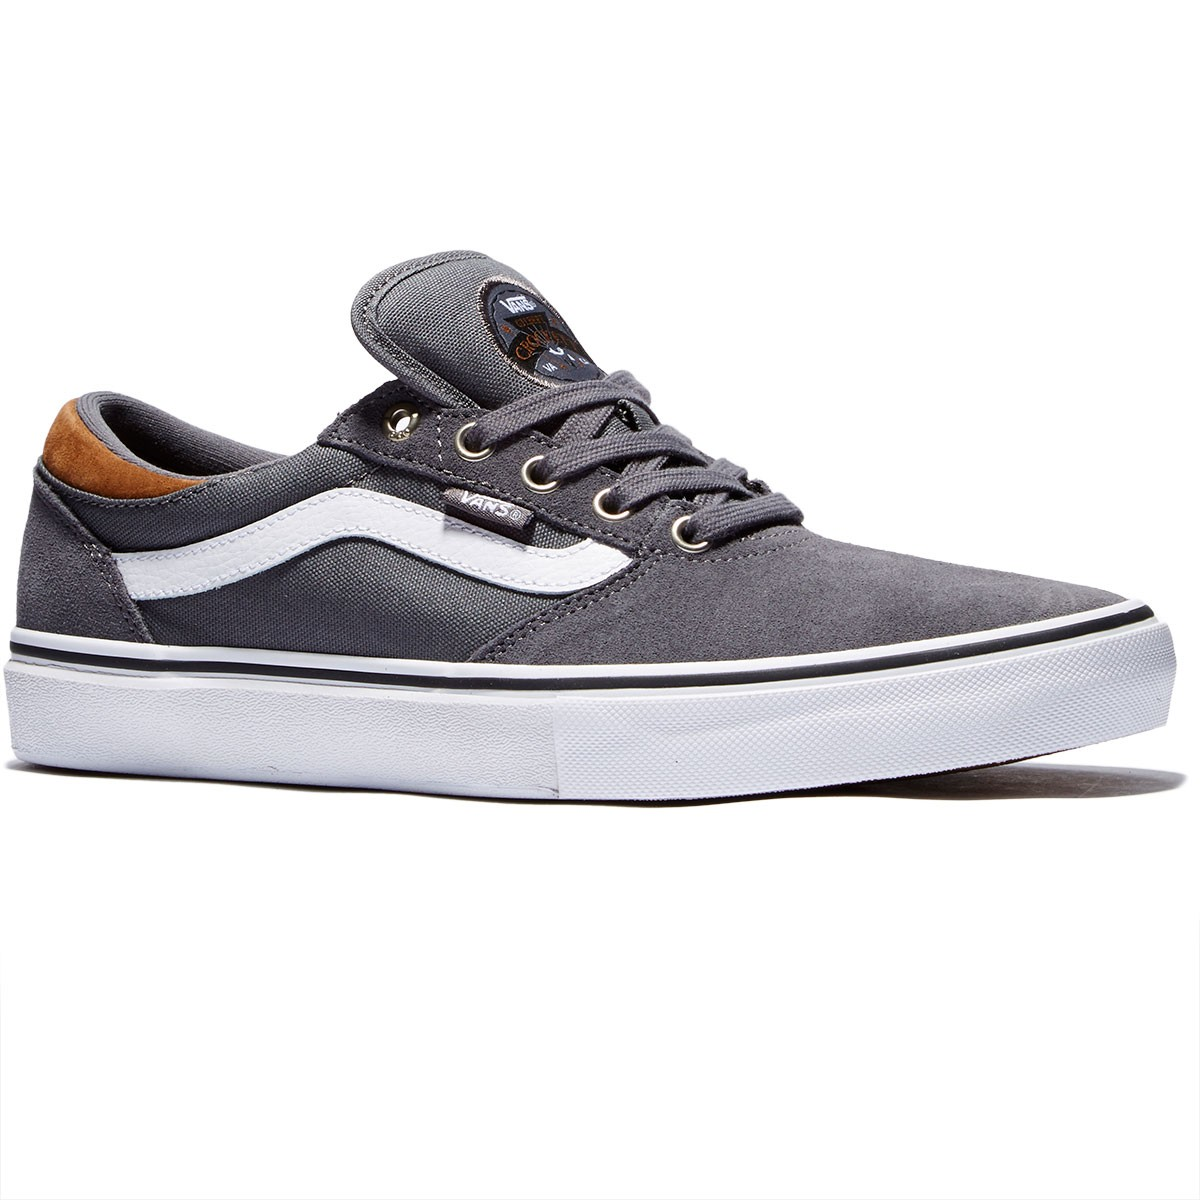 Vans Gilbert Crockett Pro Shoes - Tornado/White - 8.0